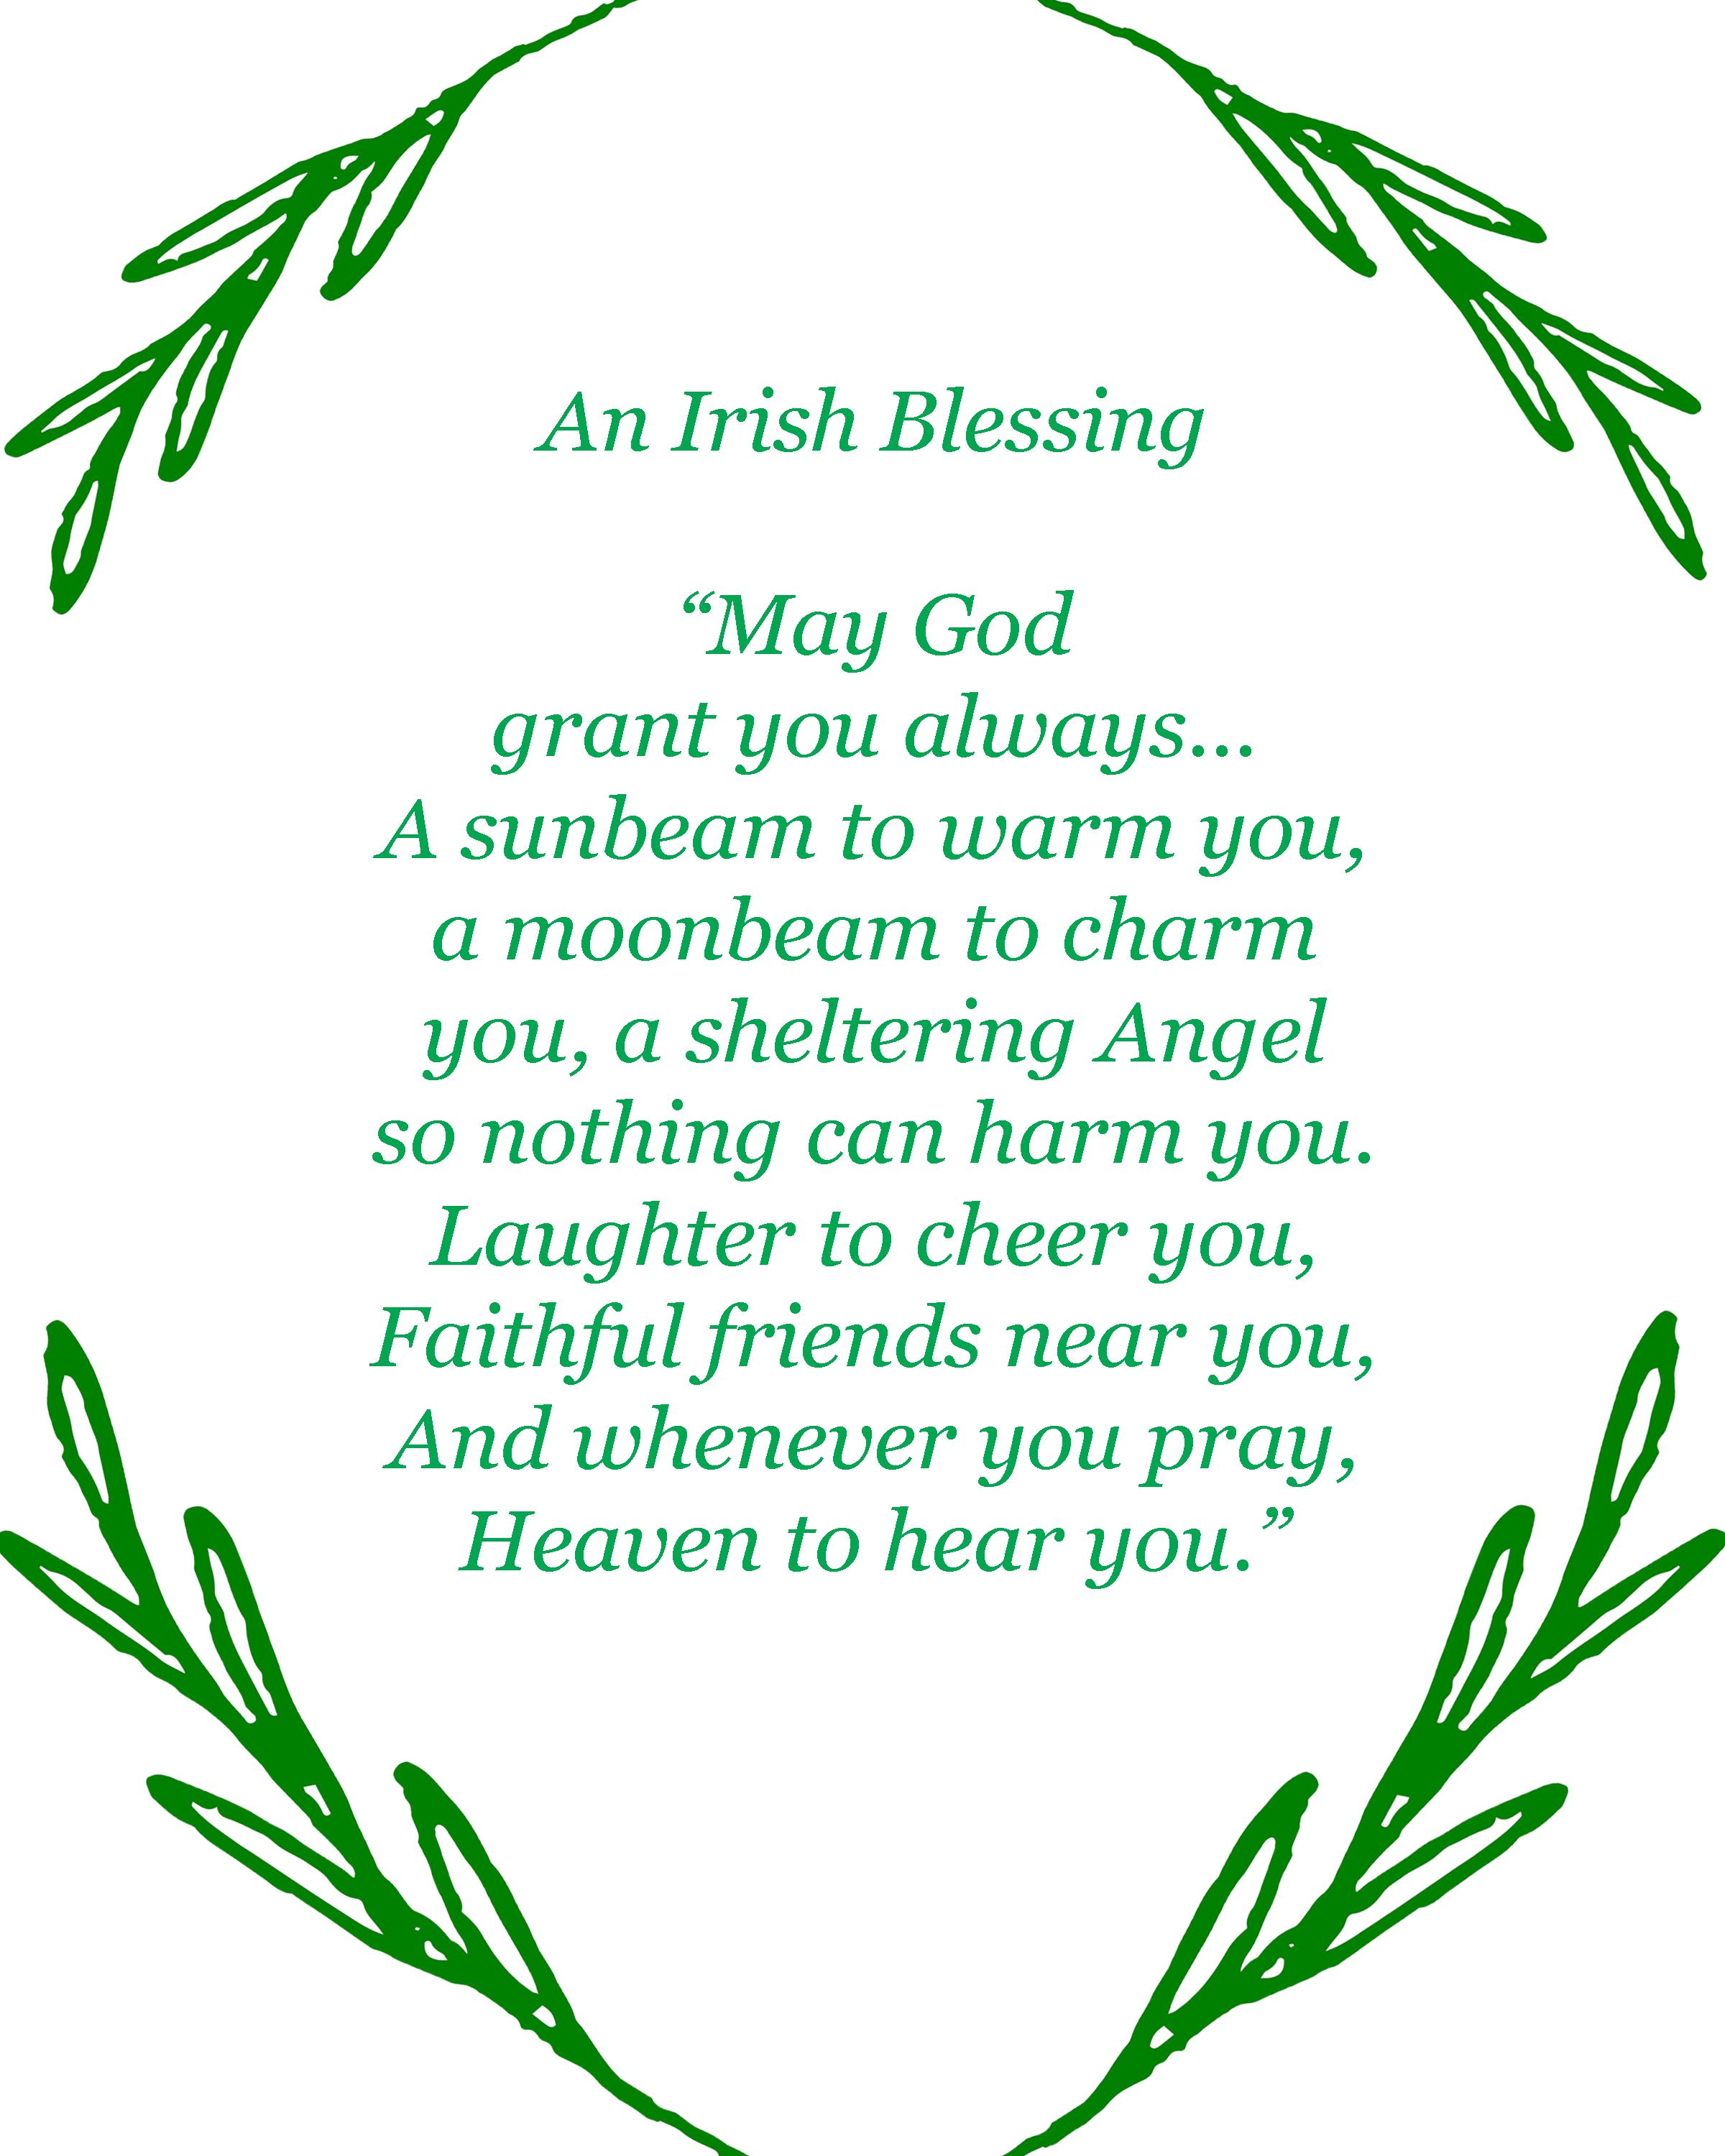 image regarding Printable Irish Blessing named Pin upon BHGs Least difficult Property Decor Drive